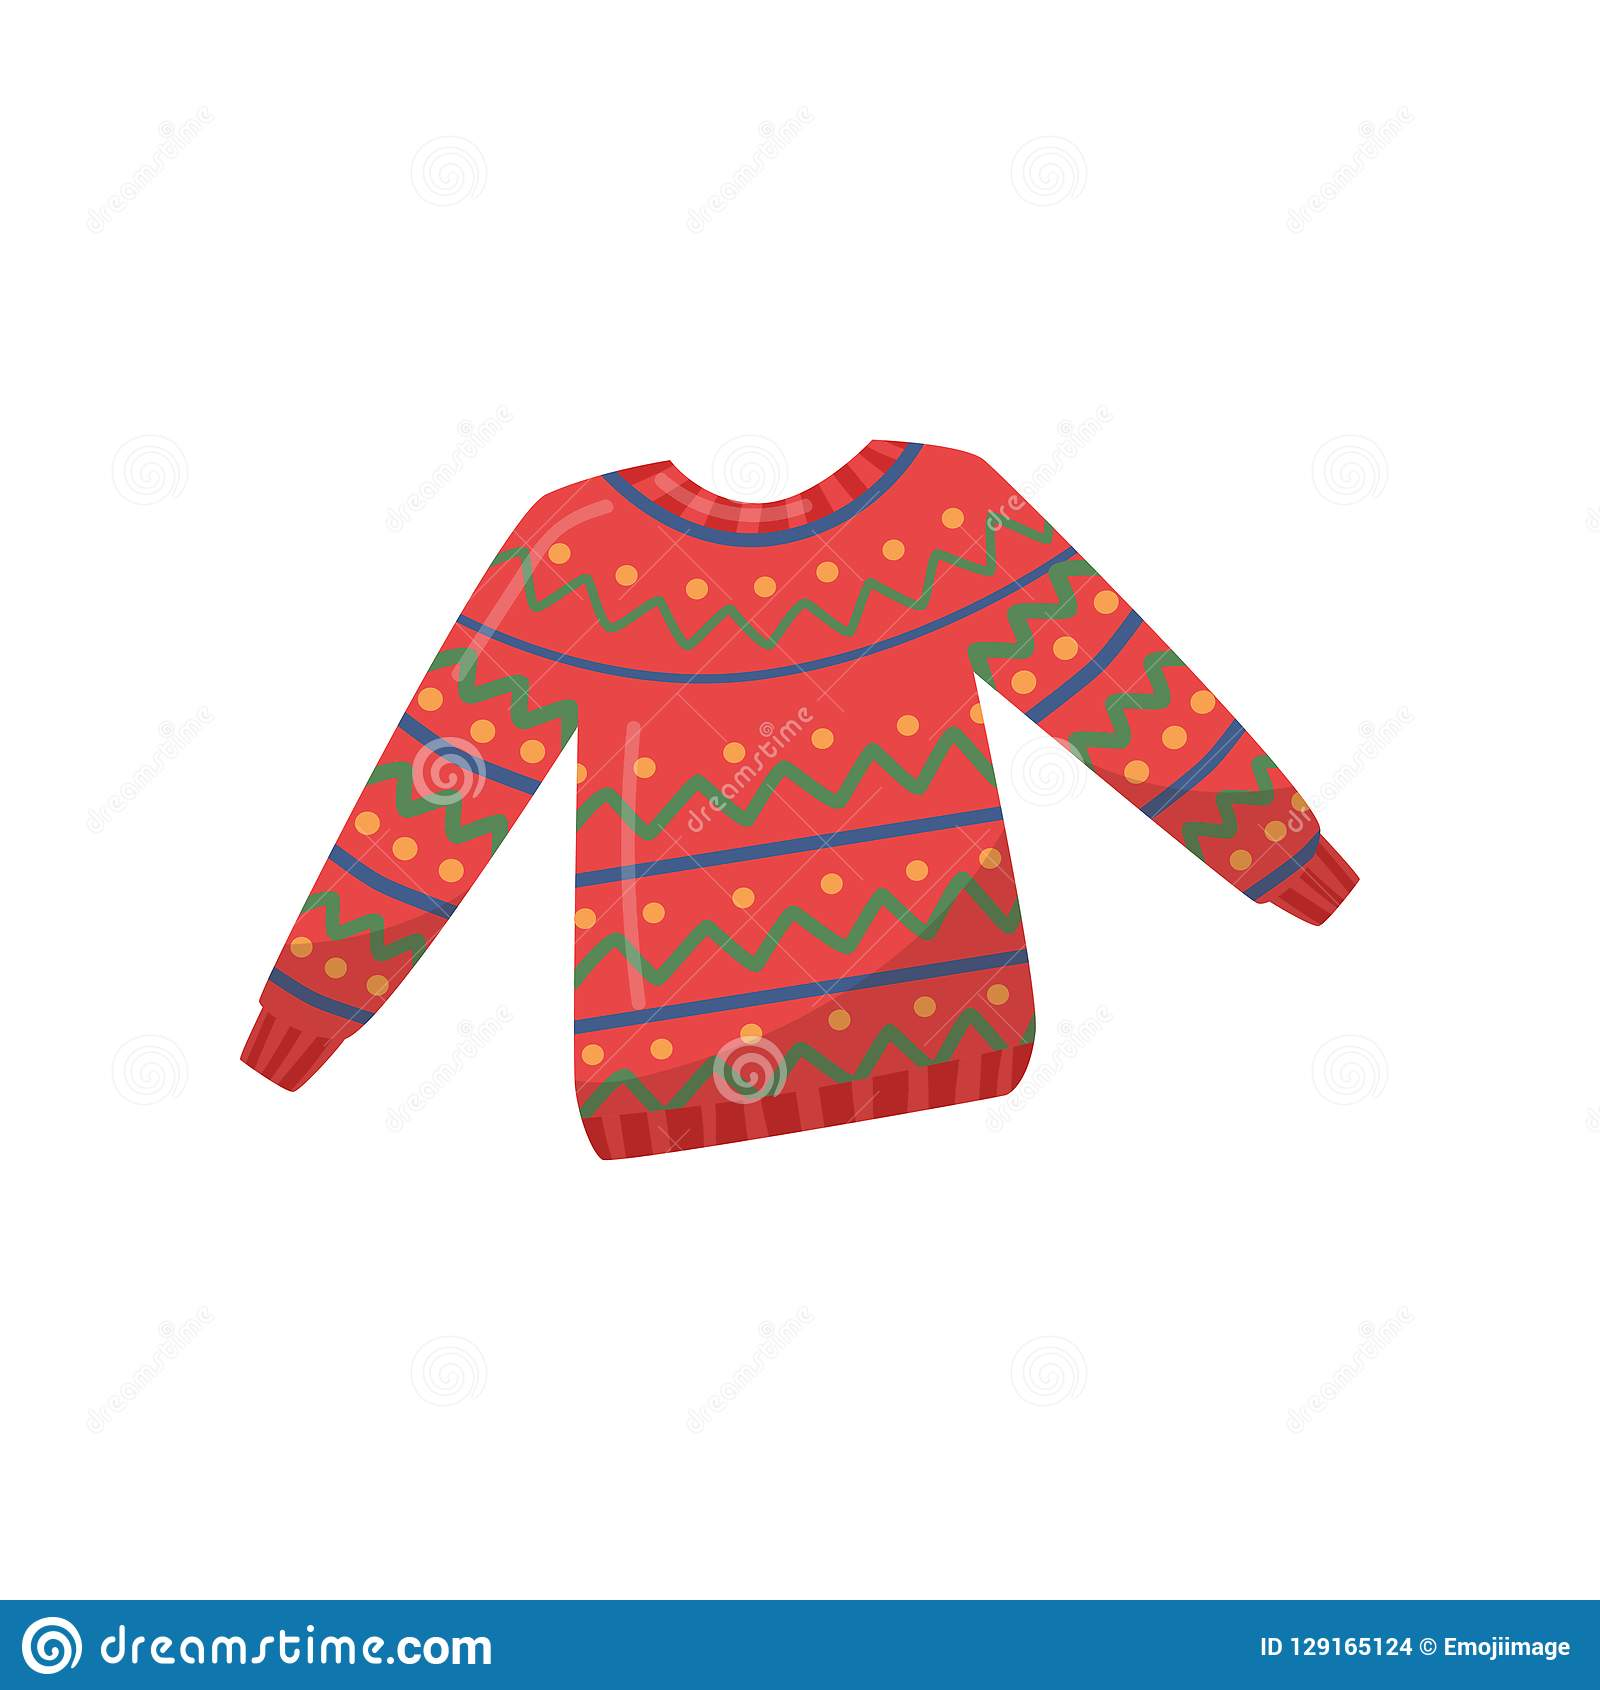 5889daec4 Illustration of knitted woolen sweater. Bright red pullover with colorful  pattern. Clothing for winter season. Warm apparel. Cartoon style icon.